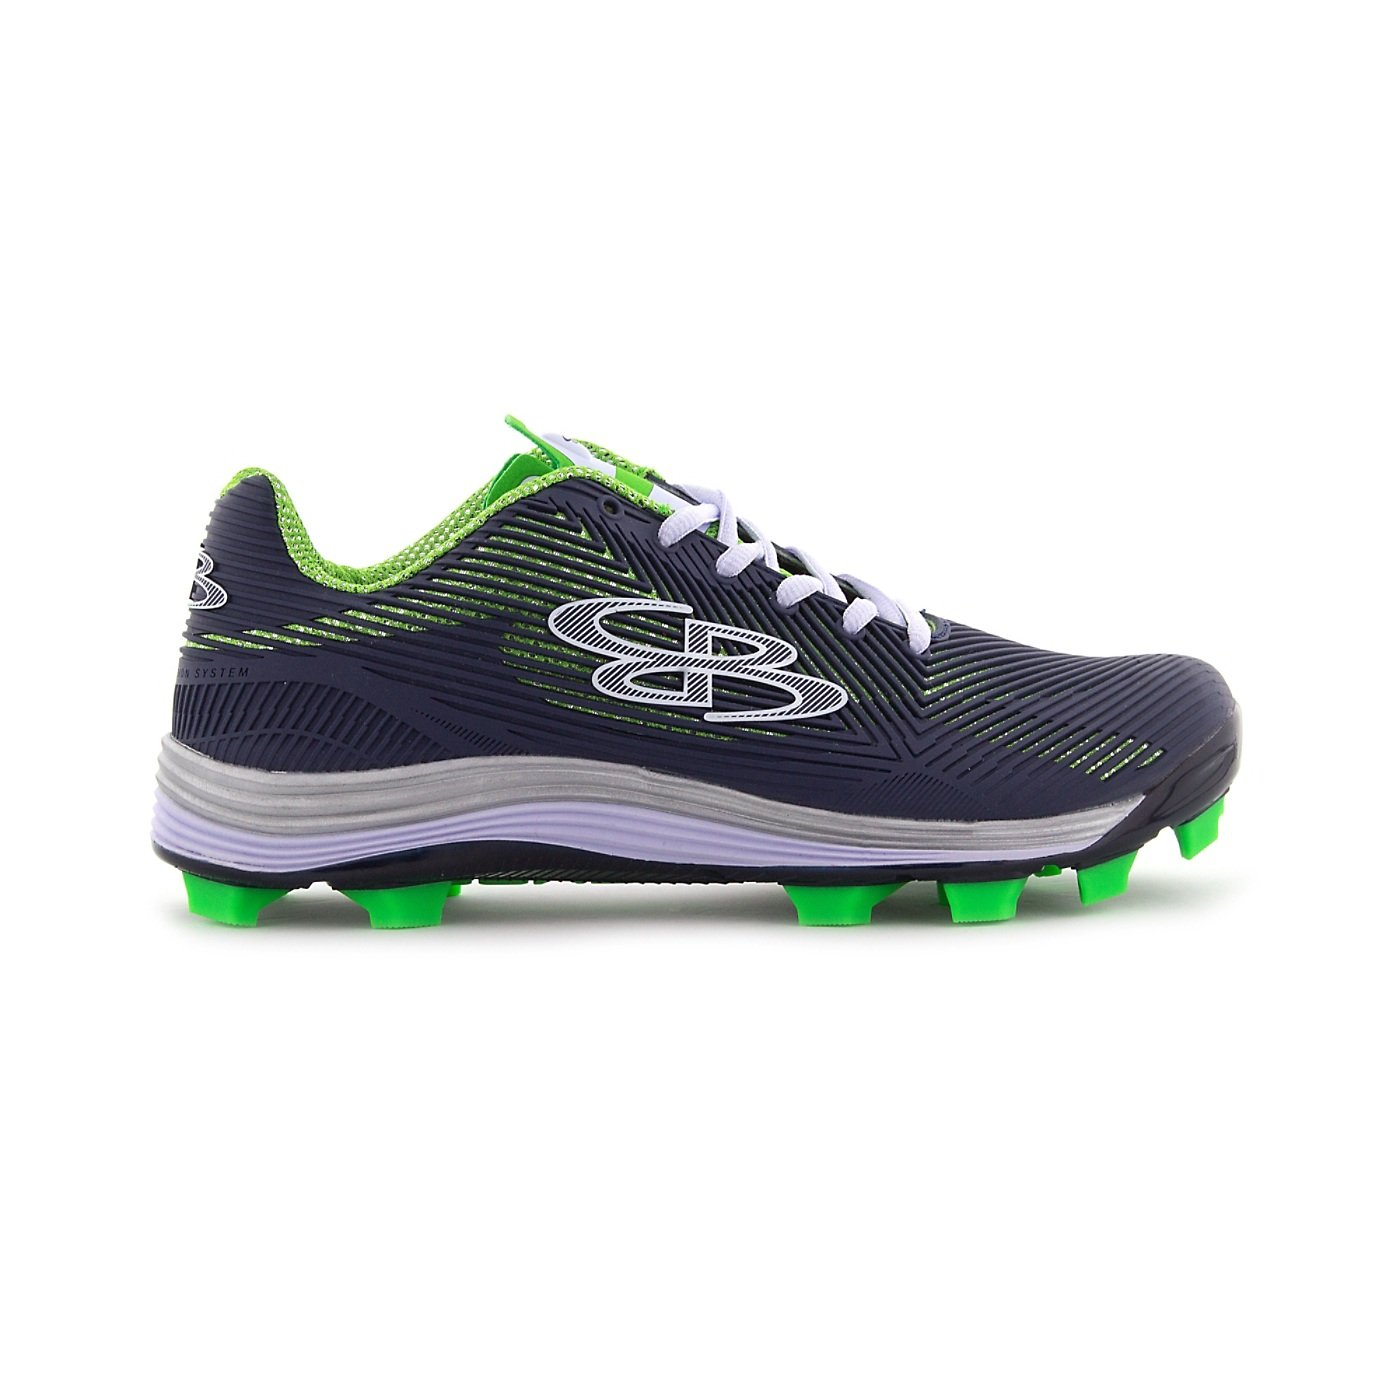 Boombah Women's Spotlight Molded Cleat Navy/Lime Green - Size 7.5 by Boombah